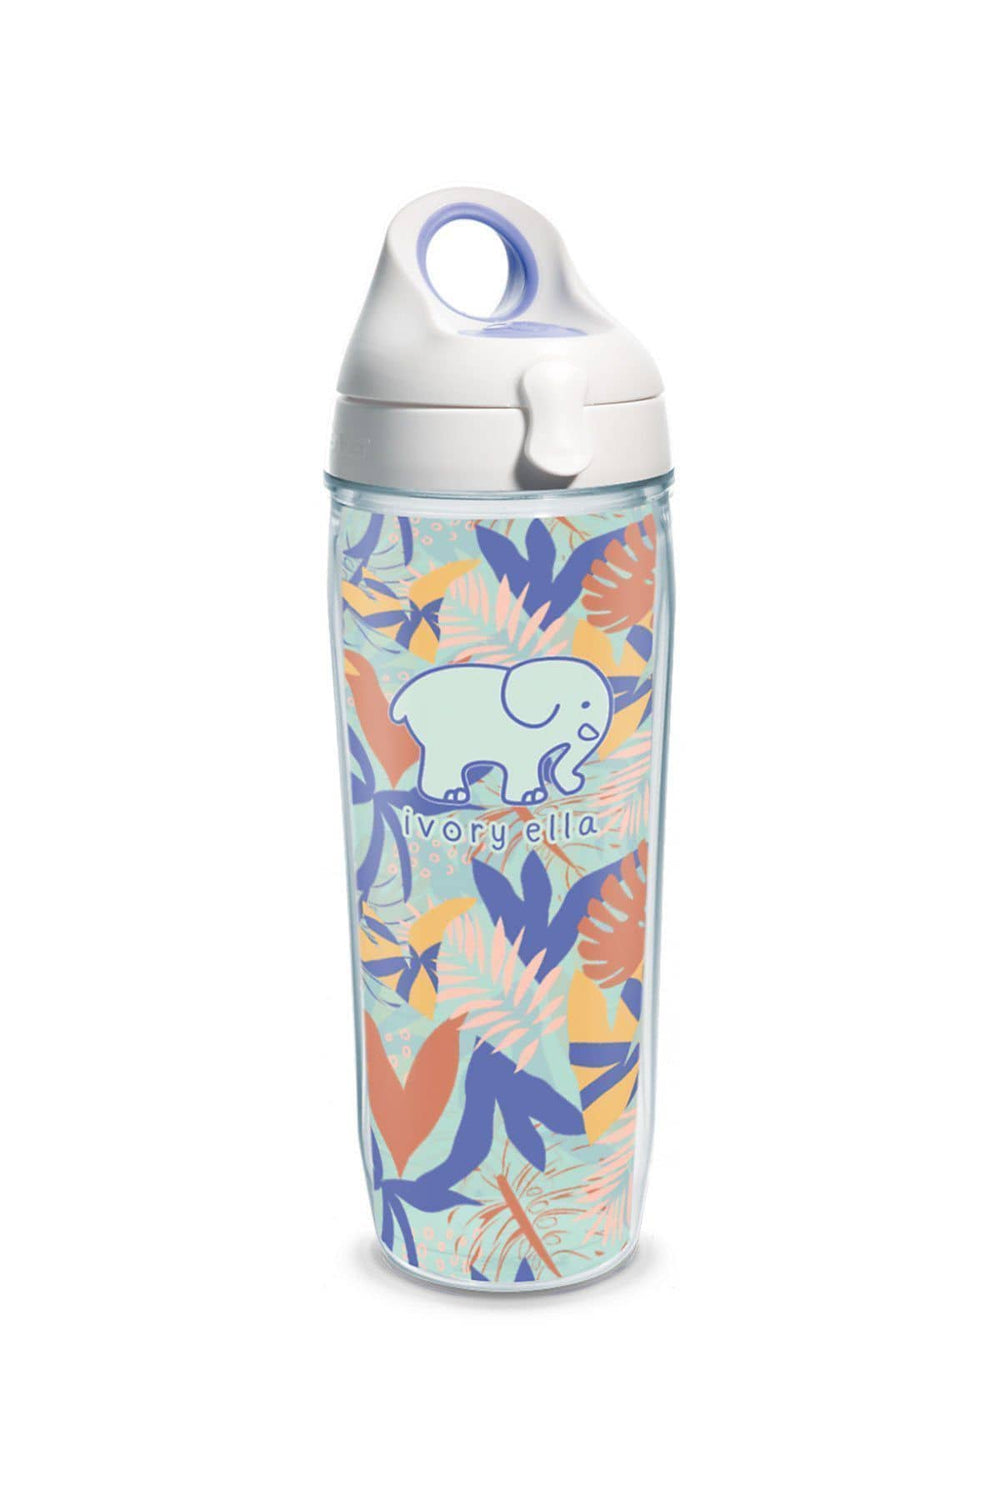 Ivory Ella Drinkware 30oz Tervis Water Bottle